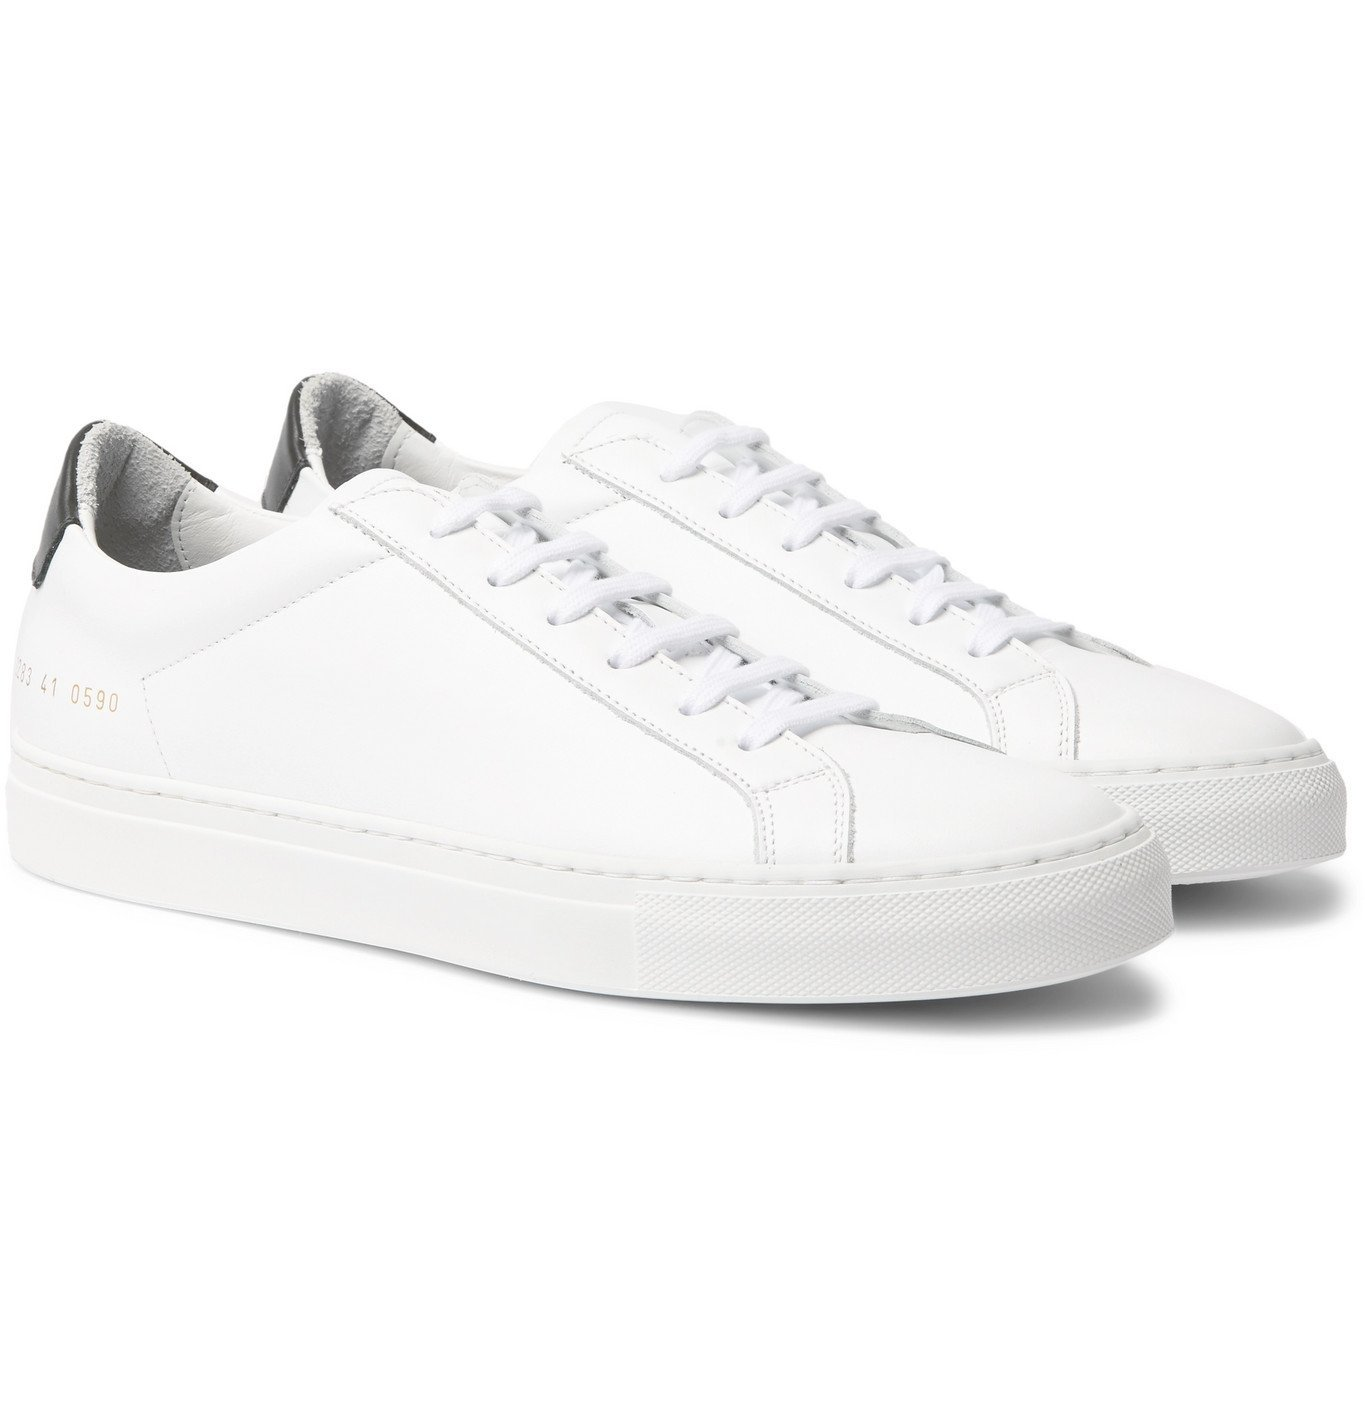 Common Projects - Retro Low Leather Sneakers - White